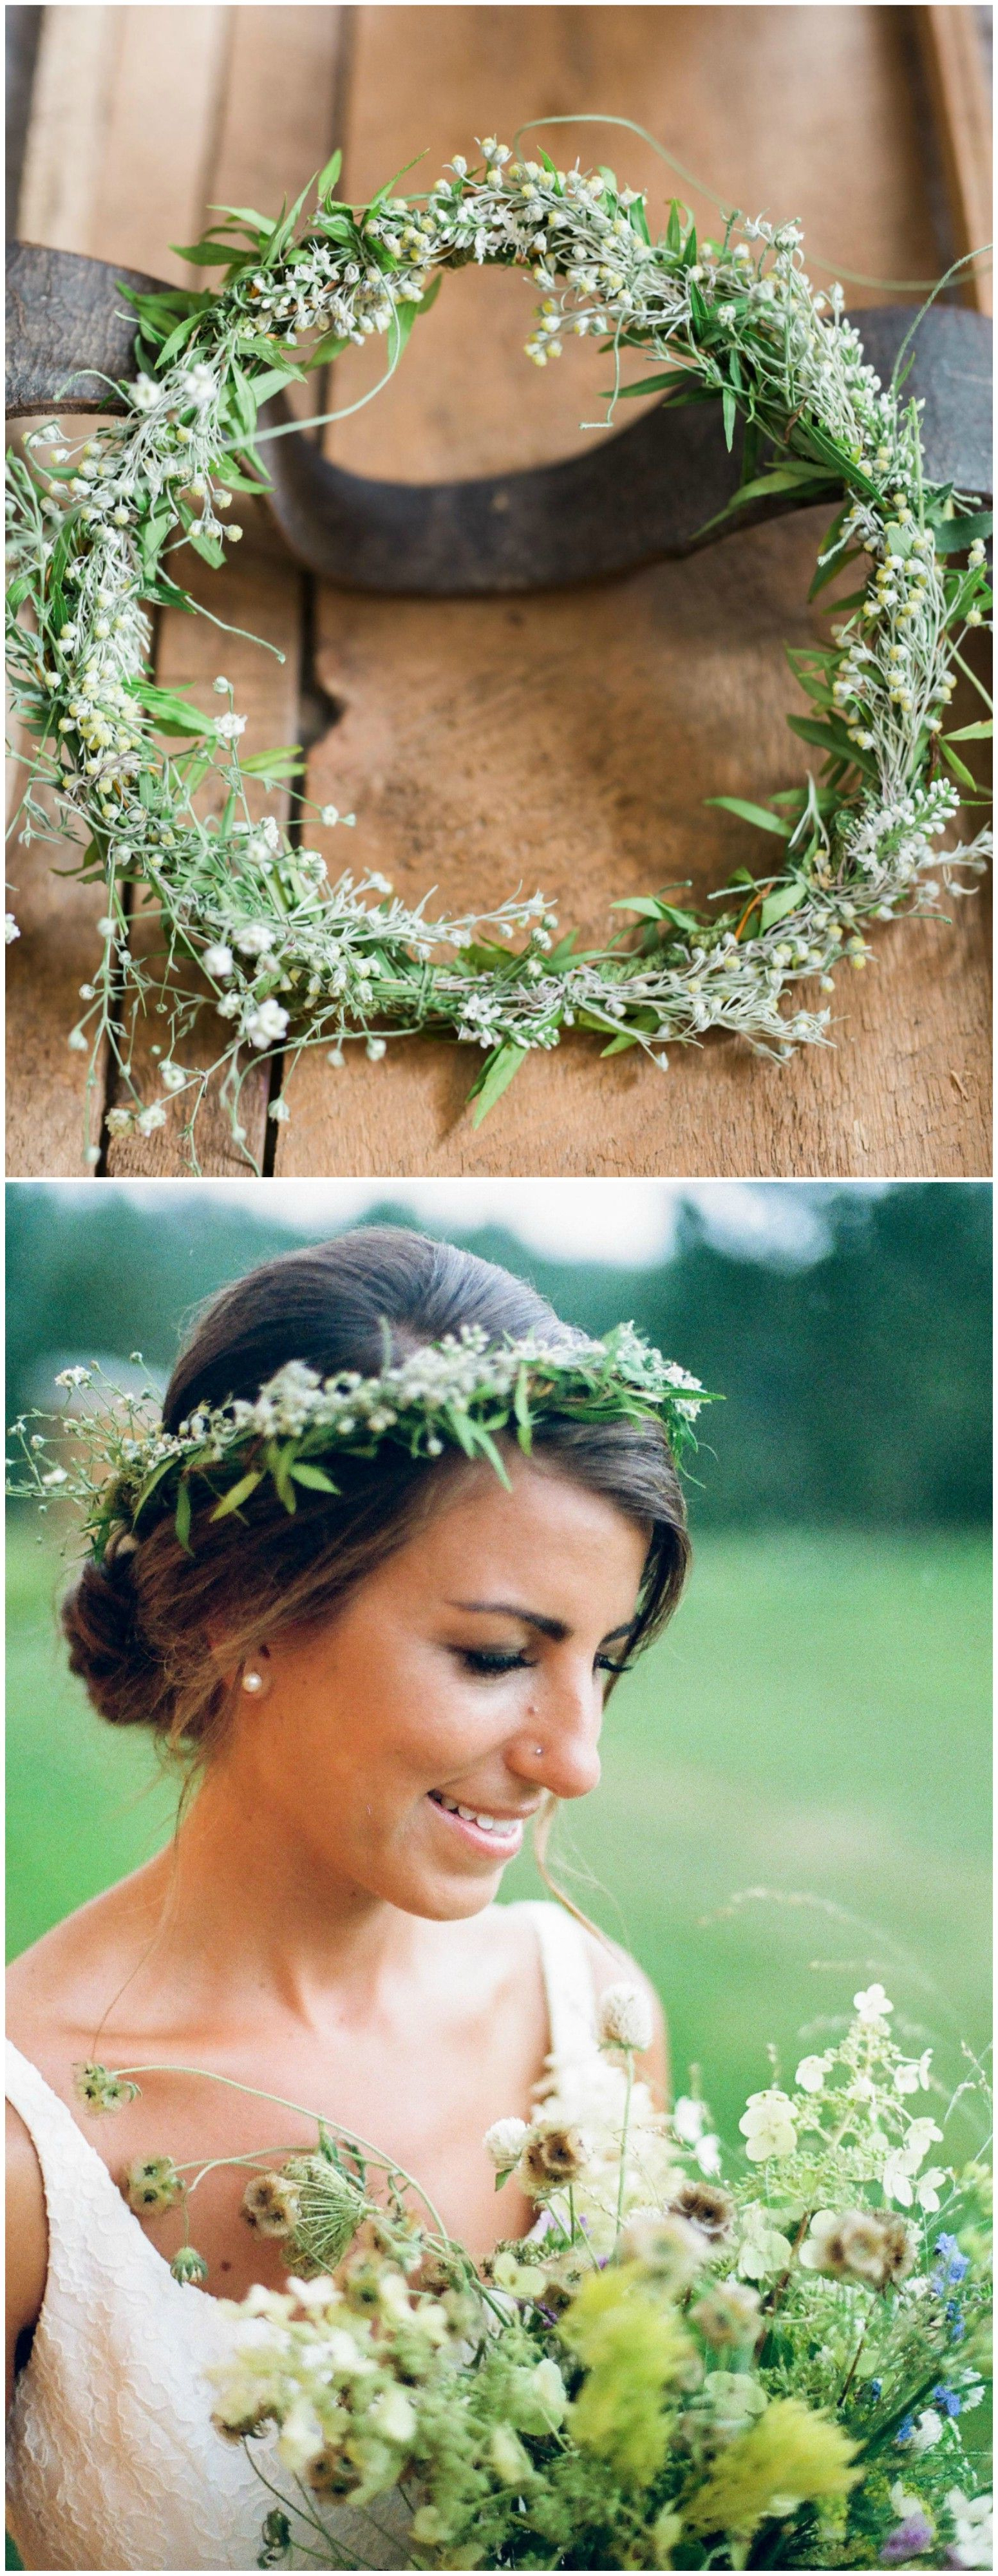 Natural Bridal Hairstyle, Wedding Up Do, Low Bun, Flower Crown Intended For Latest Undone Low Bun Bridal Hairstyles With Floral Headband (View 12 of 20)